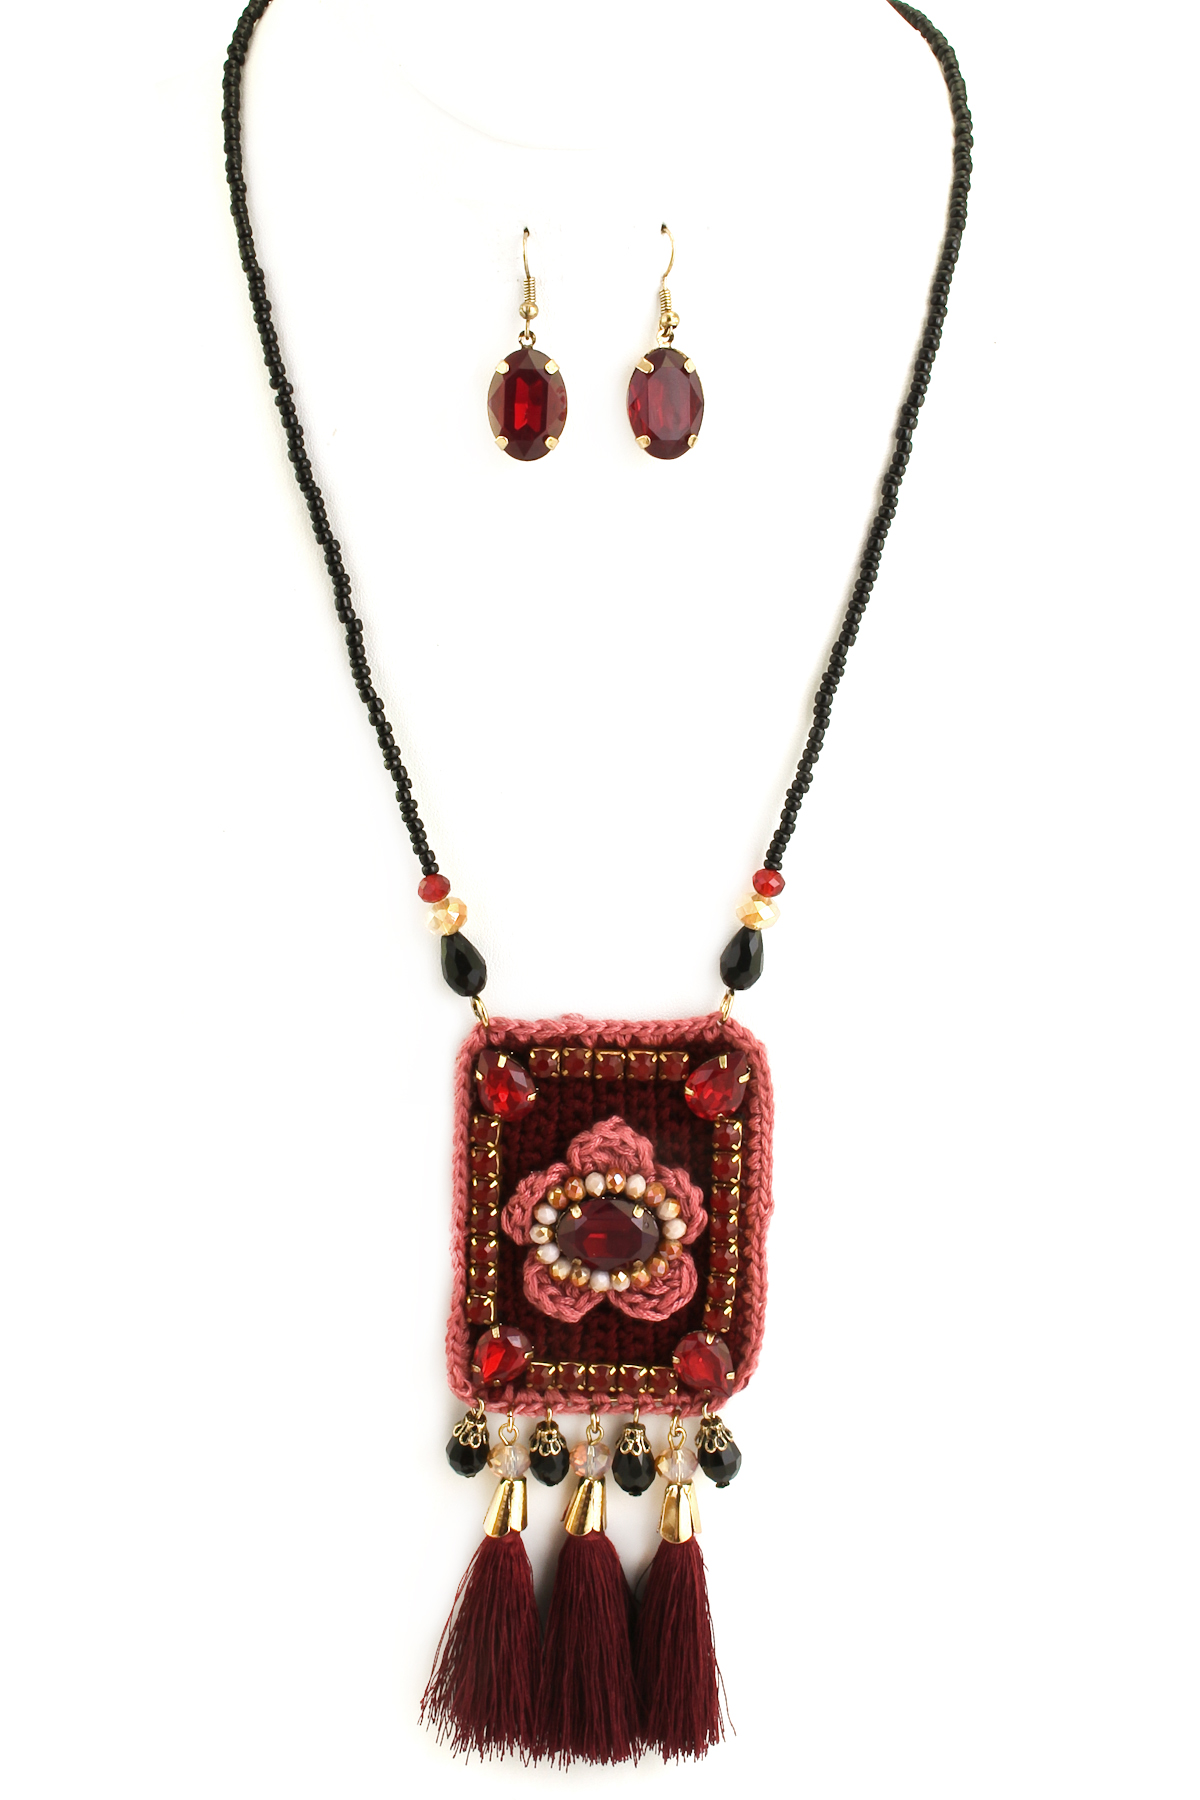 Knit Floral Pendant With Faceted Jewel Tassel Necklace Set